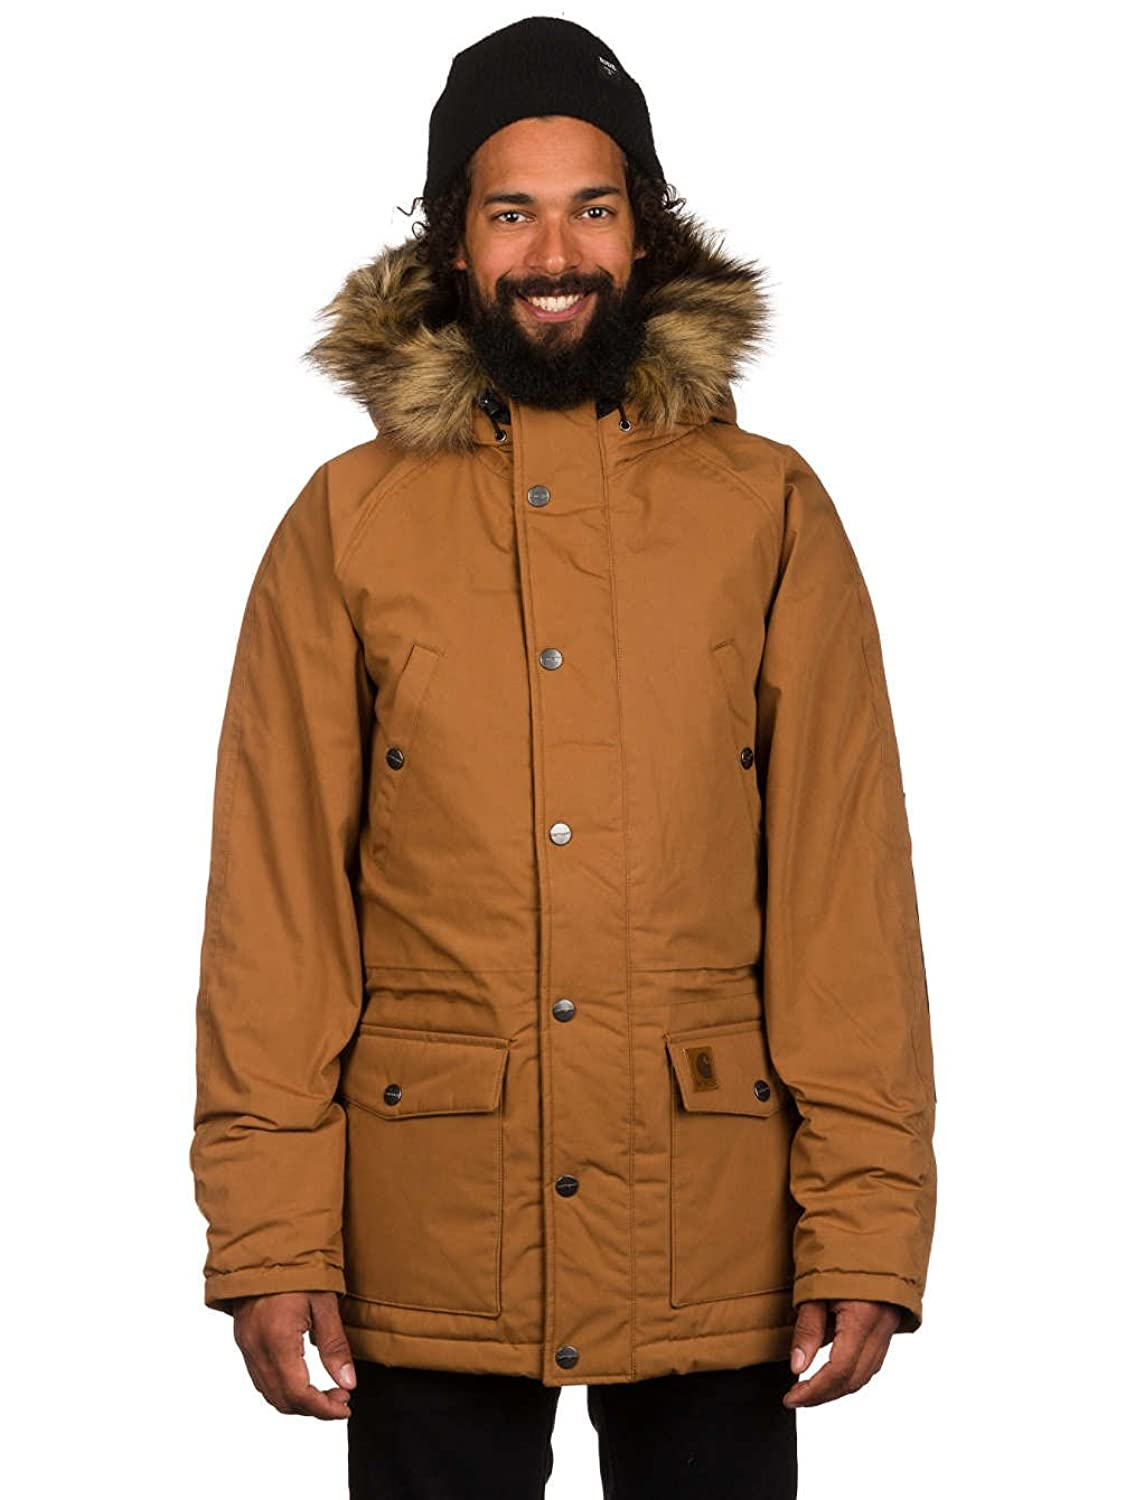 Jacket Men Carhartt Parka Jacket